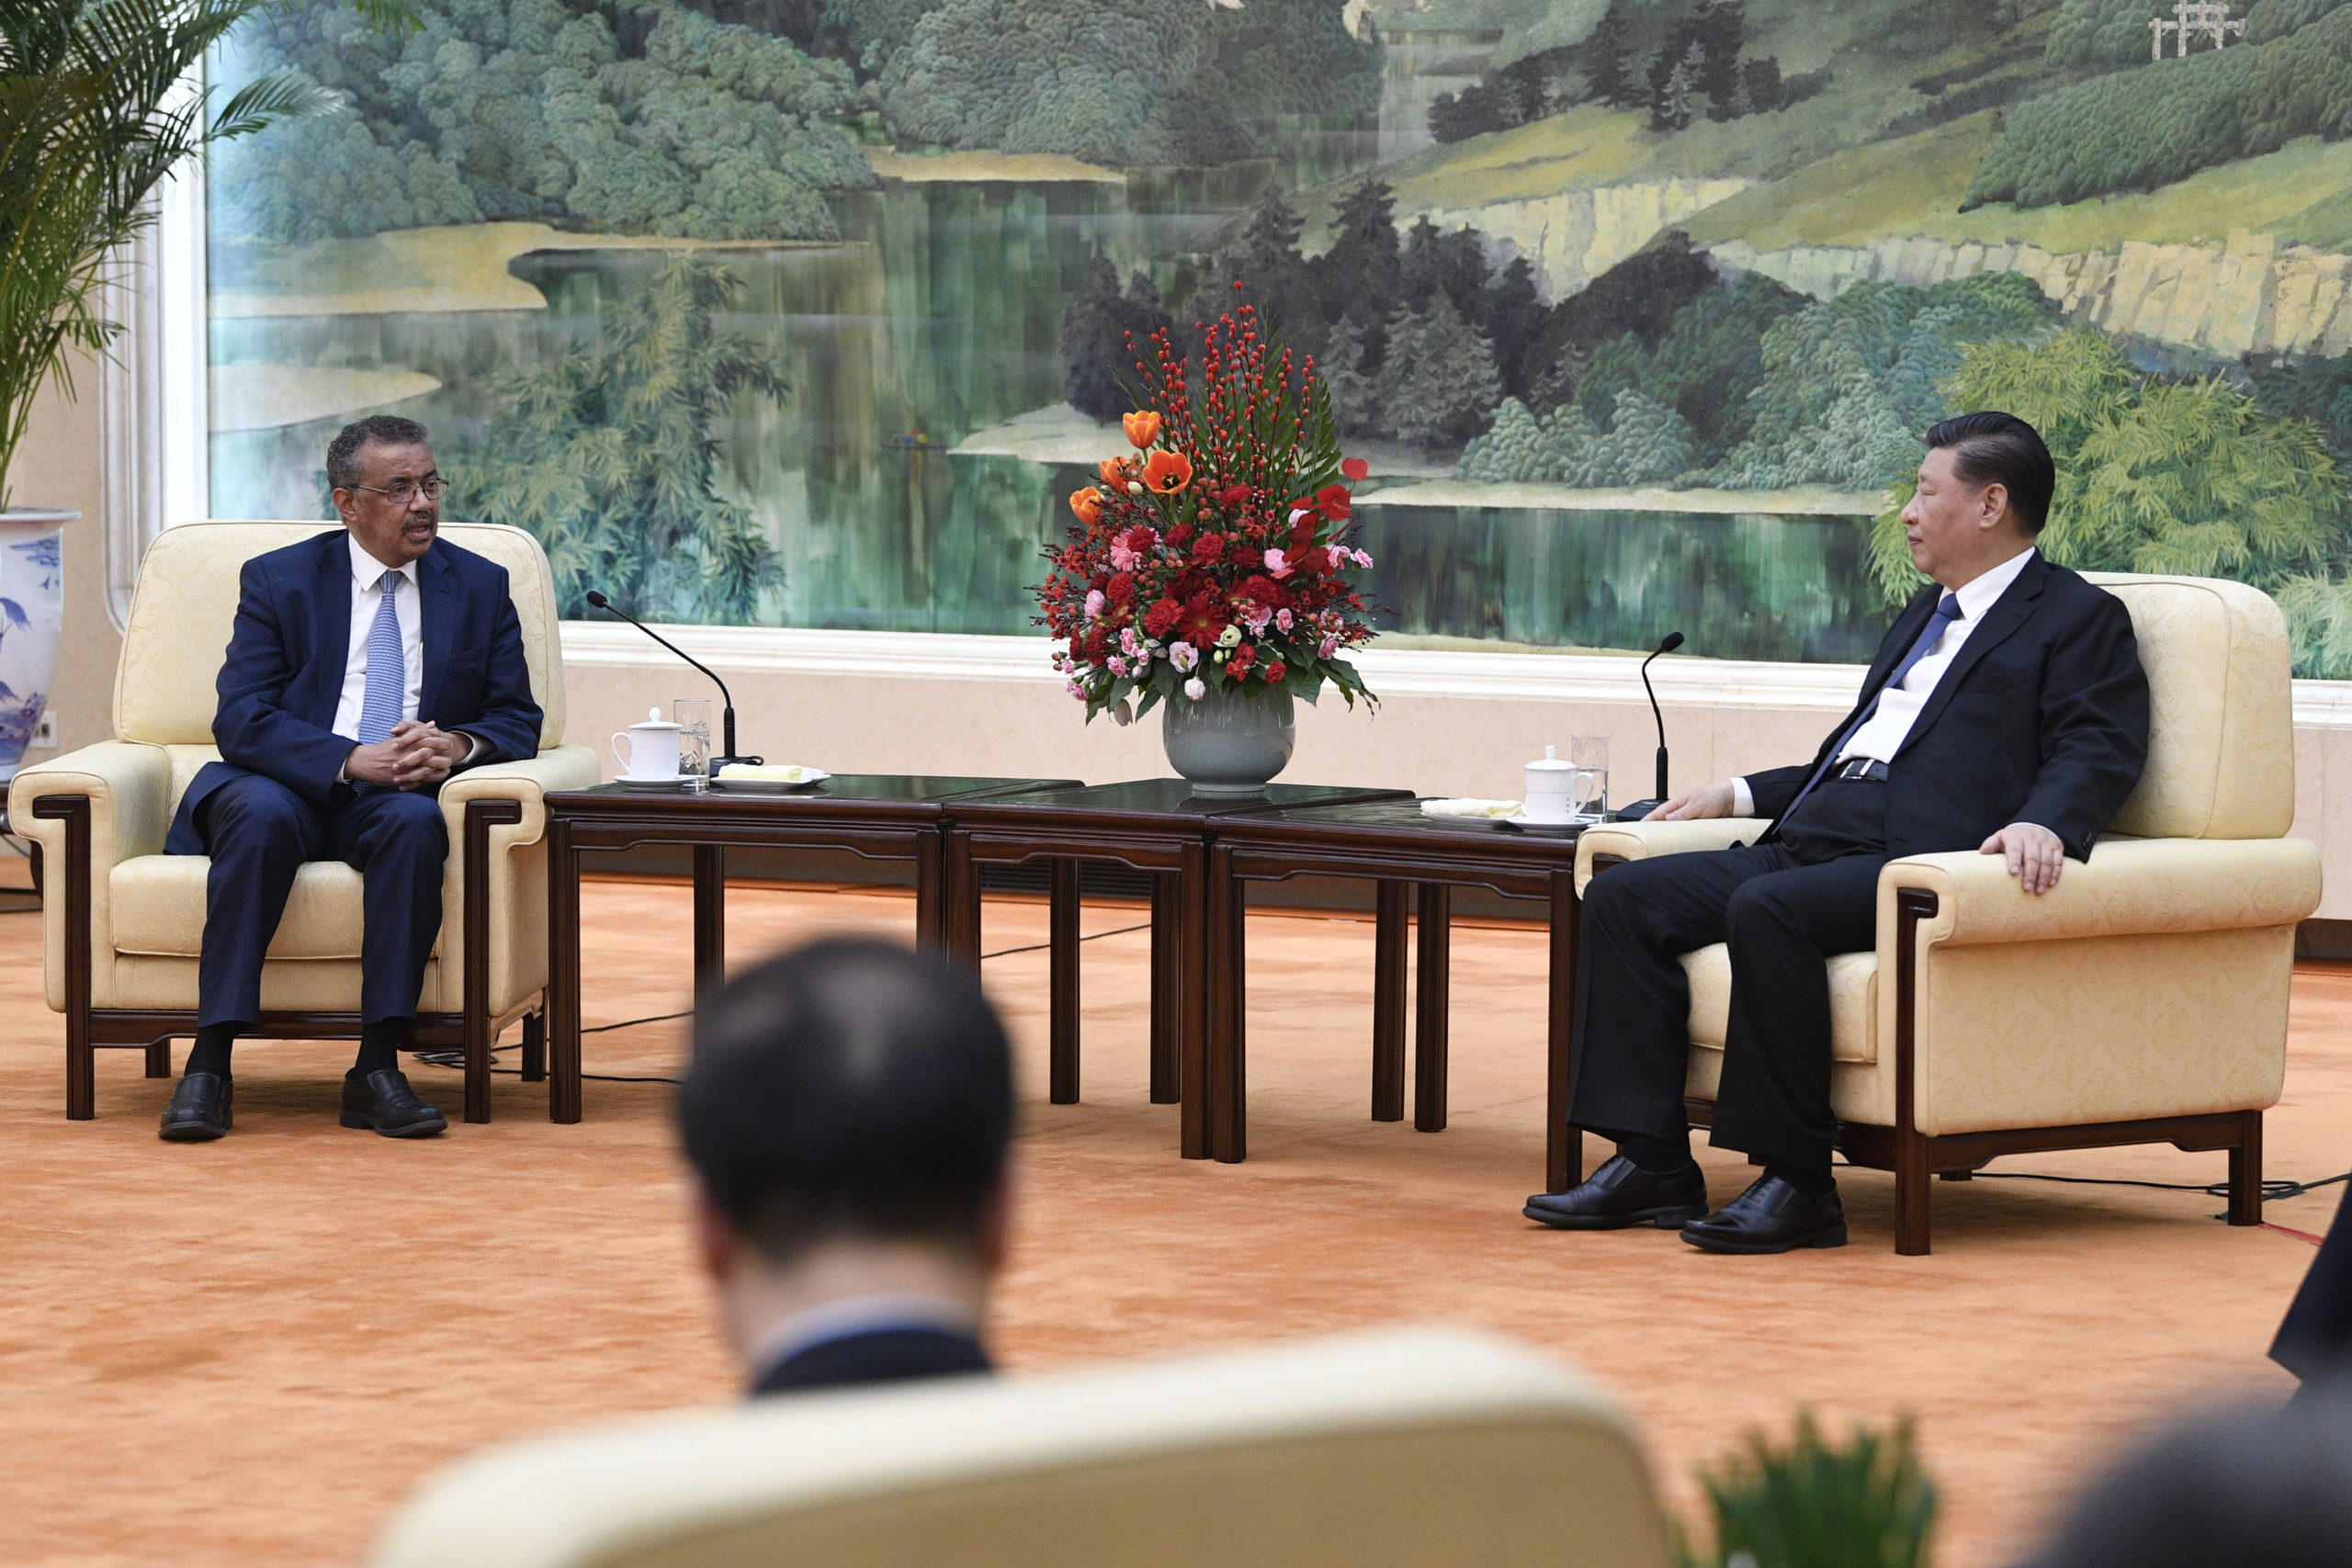 World Health Organization director general Tedros Adhanom attends a meeting with Chinese President Xi Jinping in Beijing on Jan. 28. (Naohiko Hatta/AFP via Getty Images)